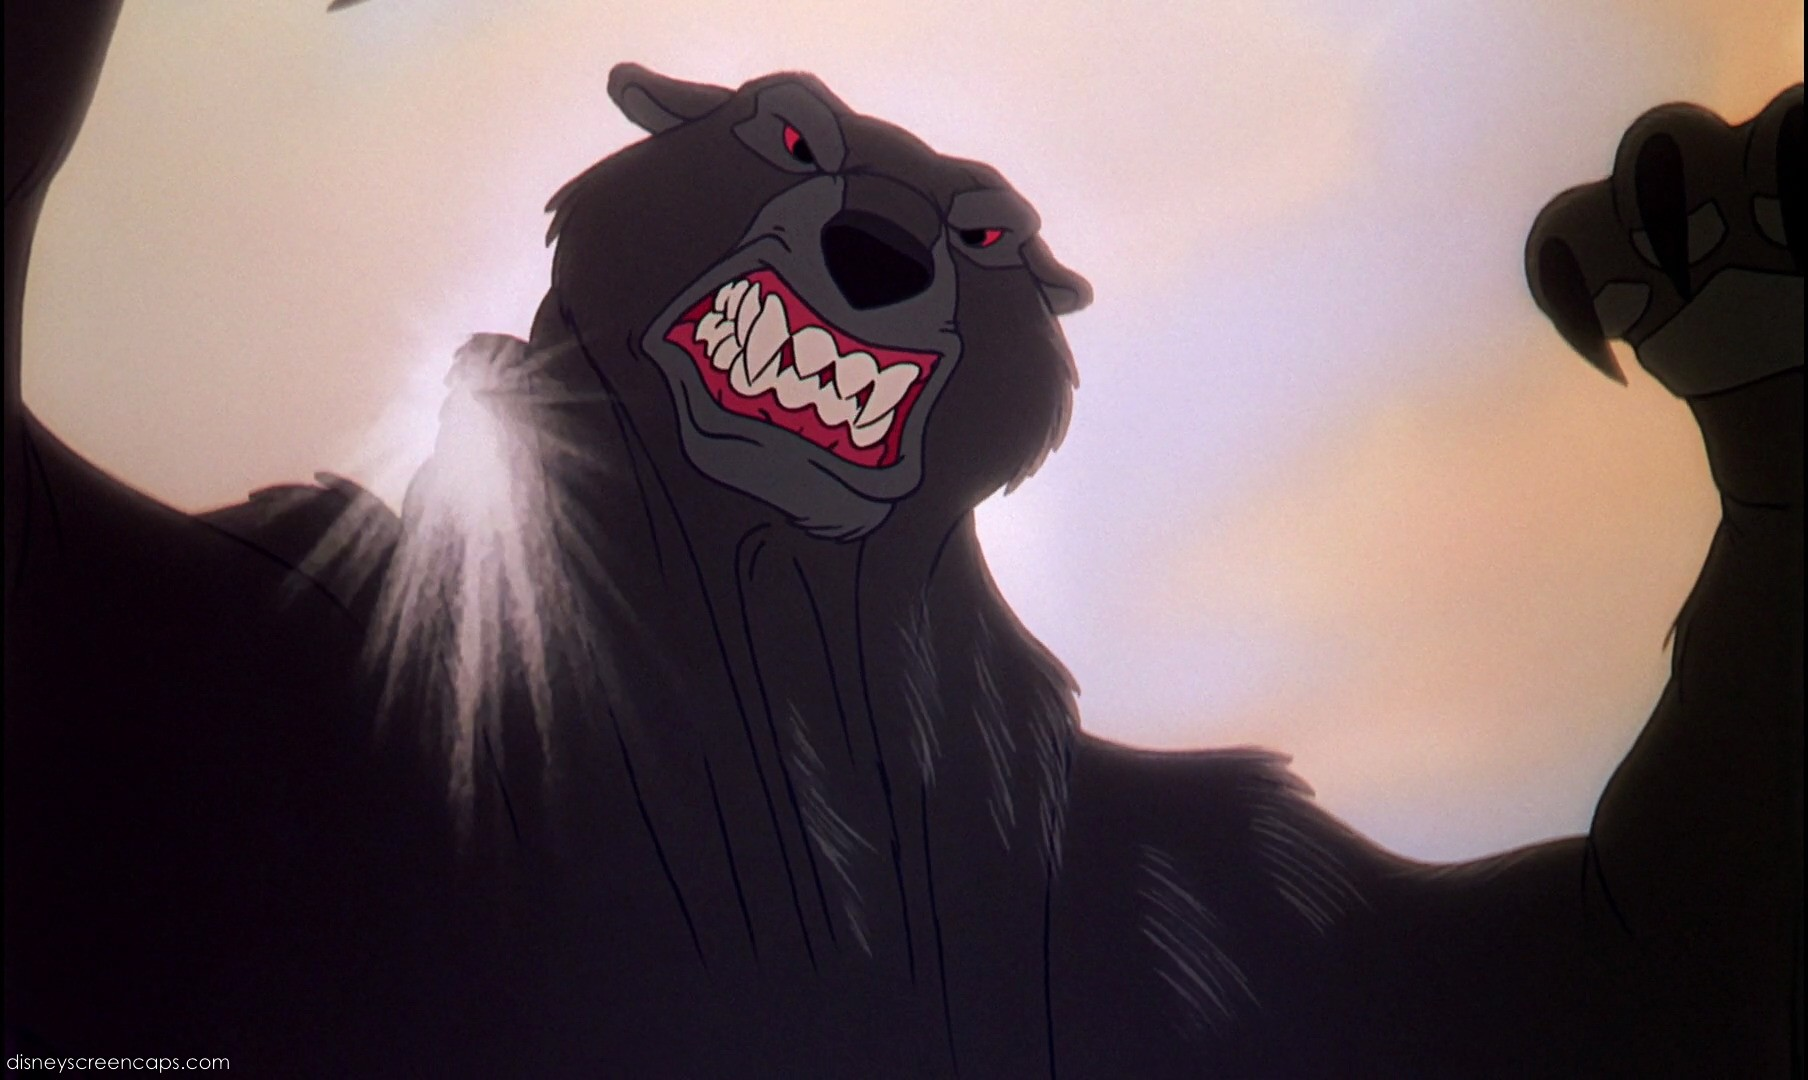 Bear (The Fox And The Hound)